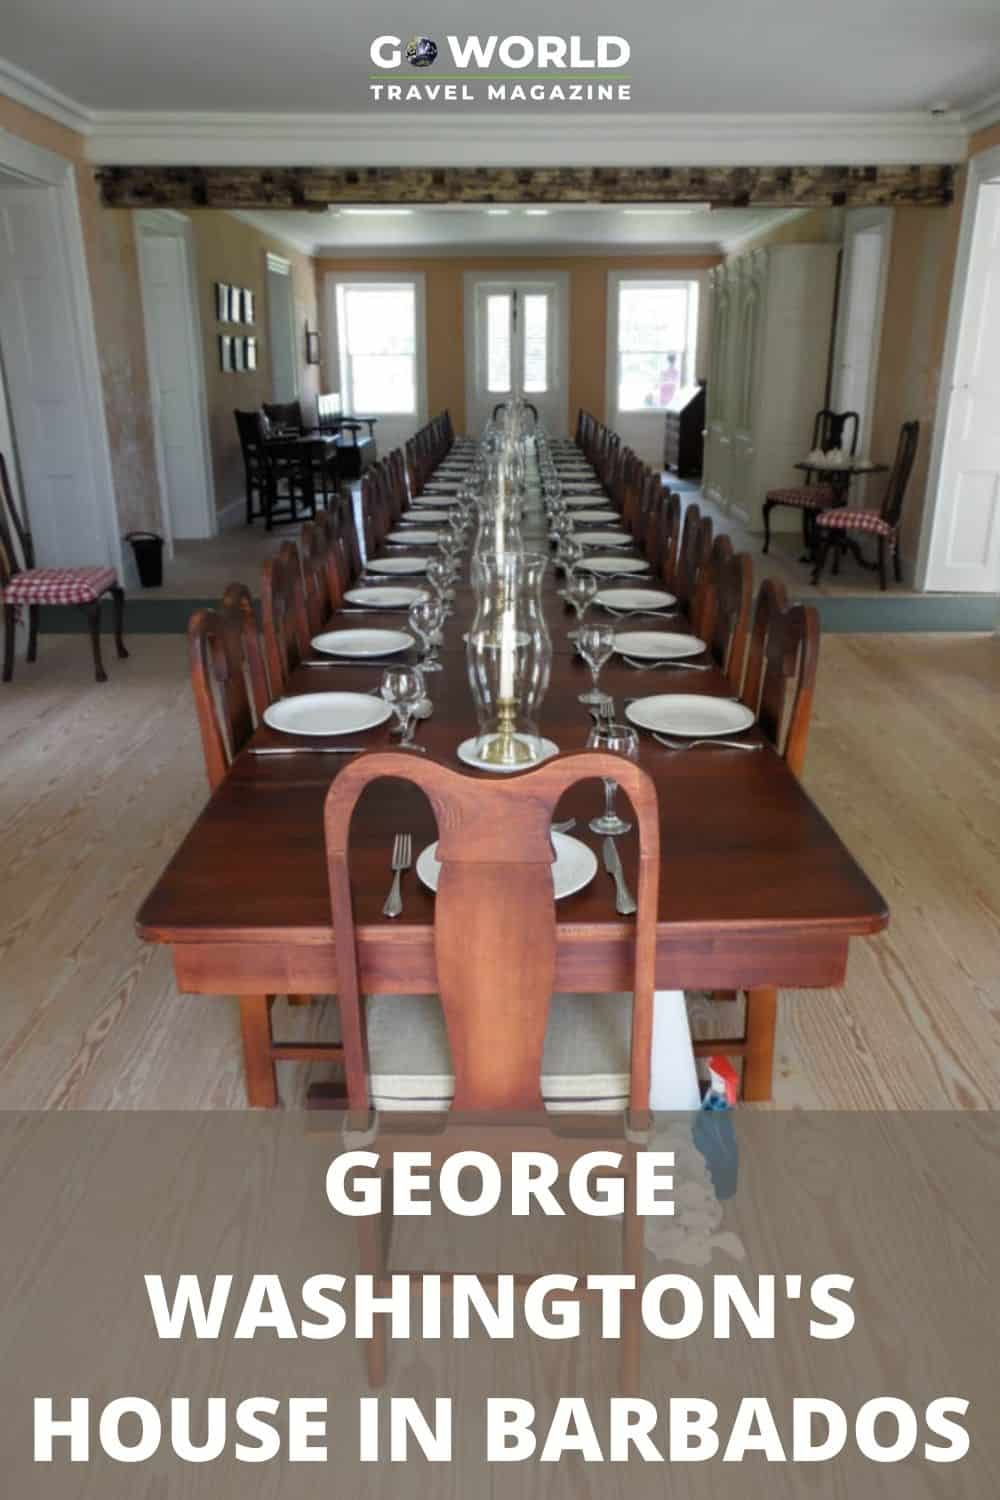 The George Washington House in Barbados is a UNESCO-protected site full of period furniture, interesting stories and even some of his writing. #Barbadostravel #GeorgeWashingtonhouse #historichouses